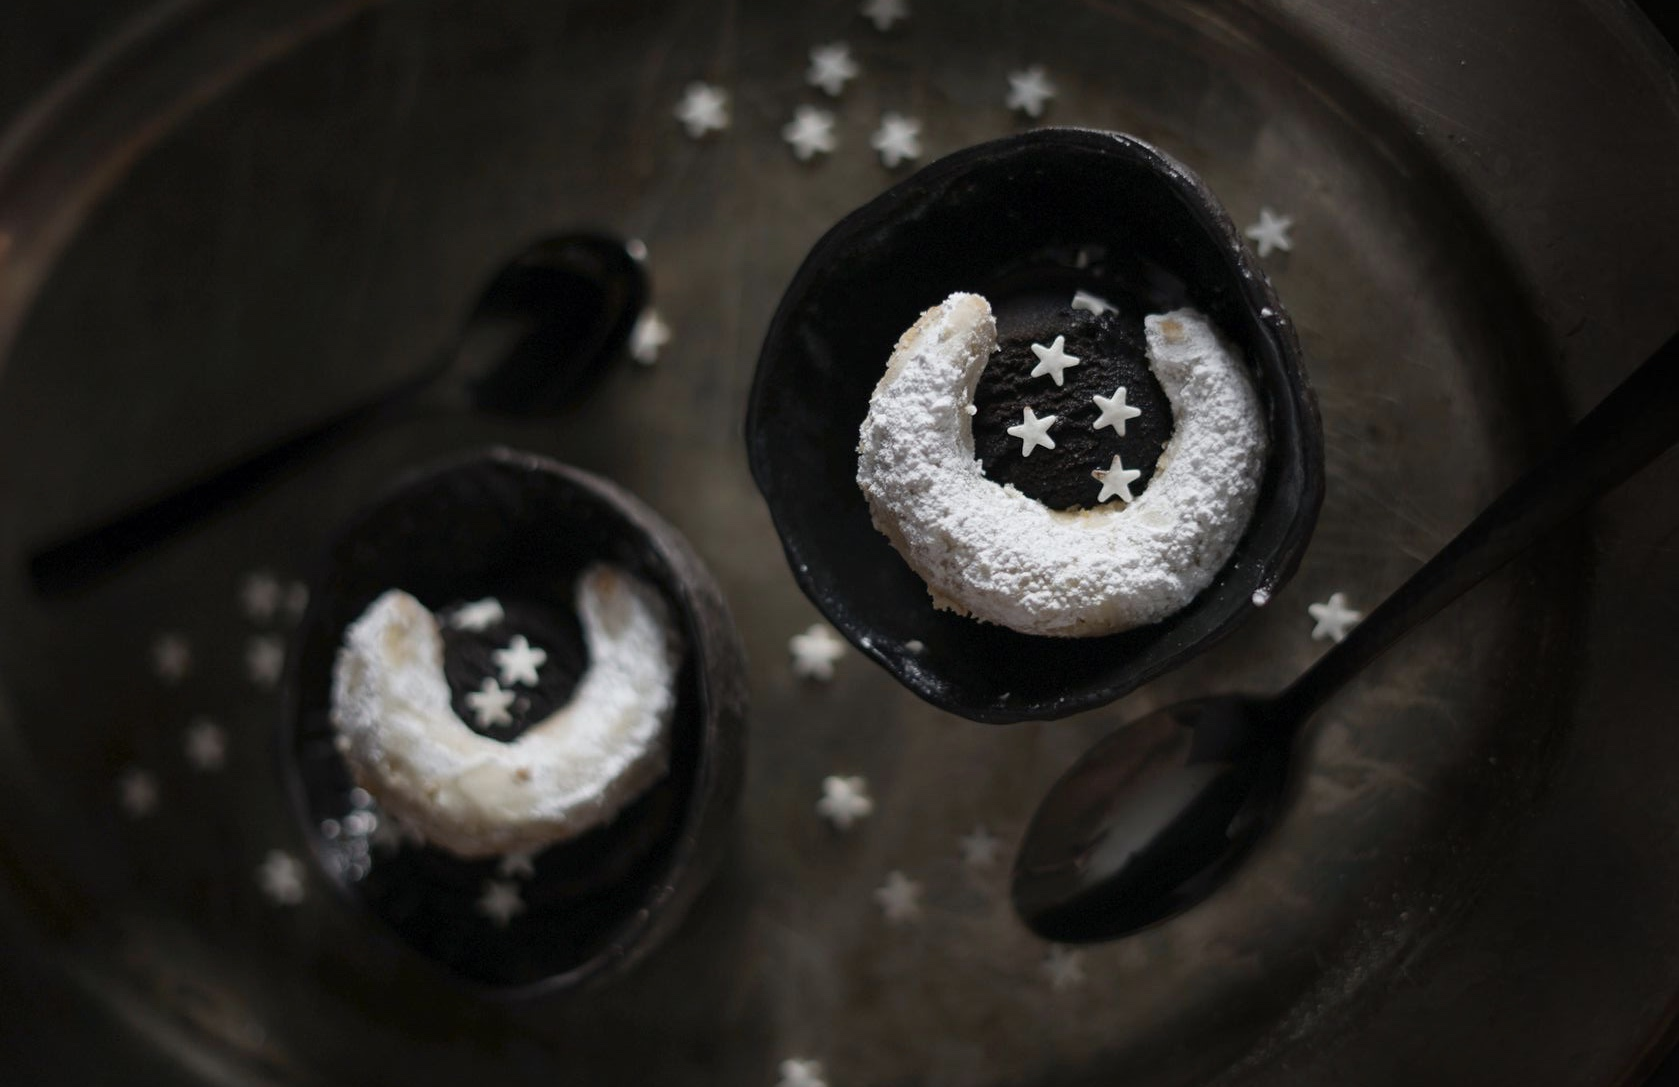 Moon Spell Cookies